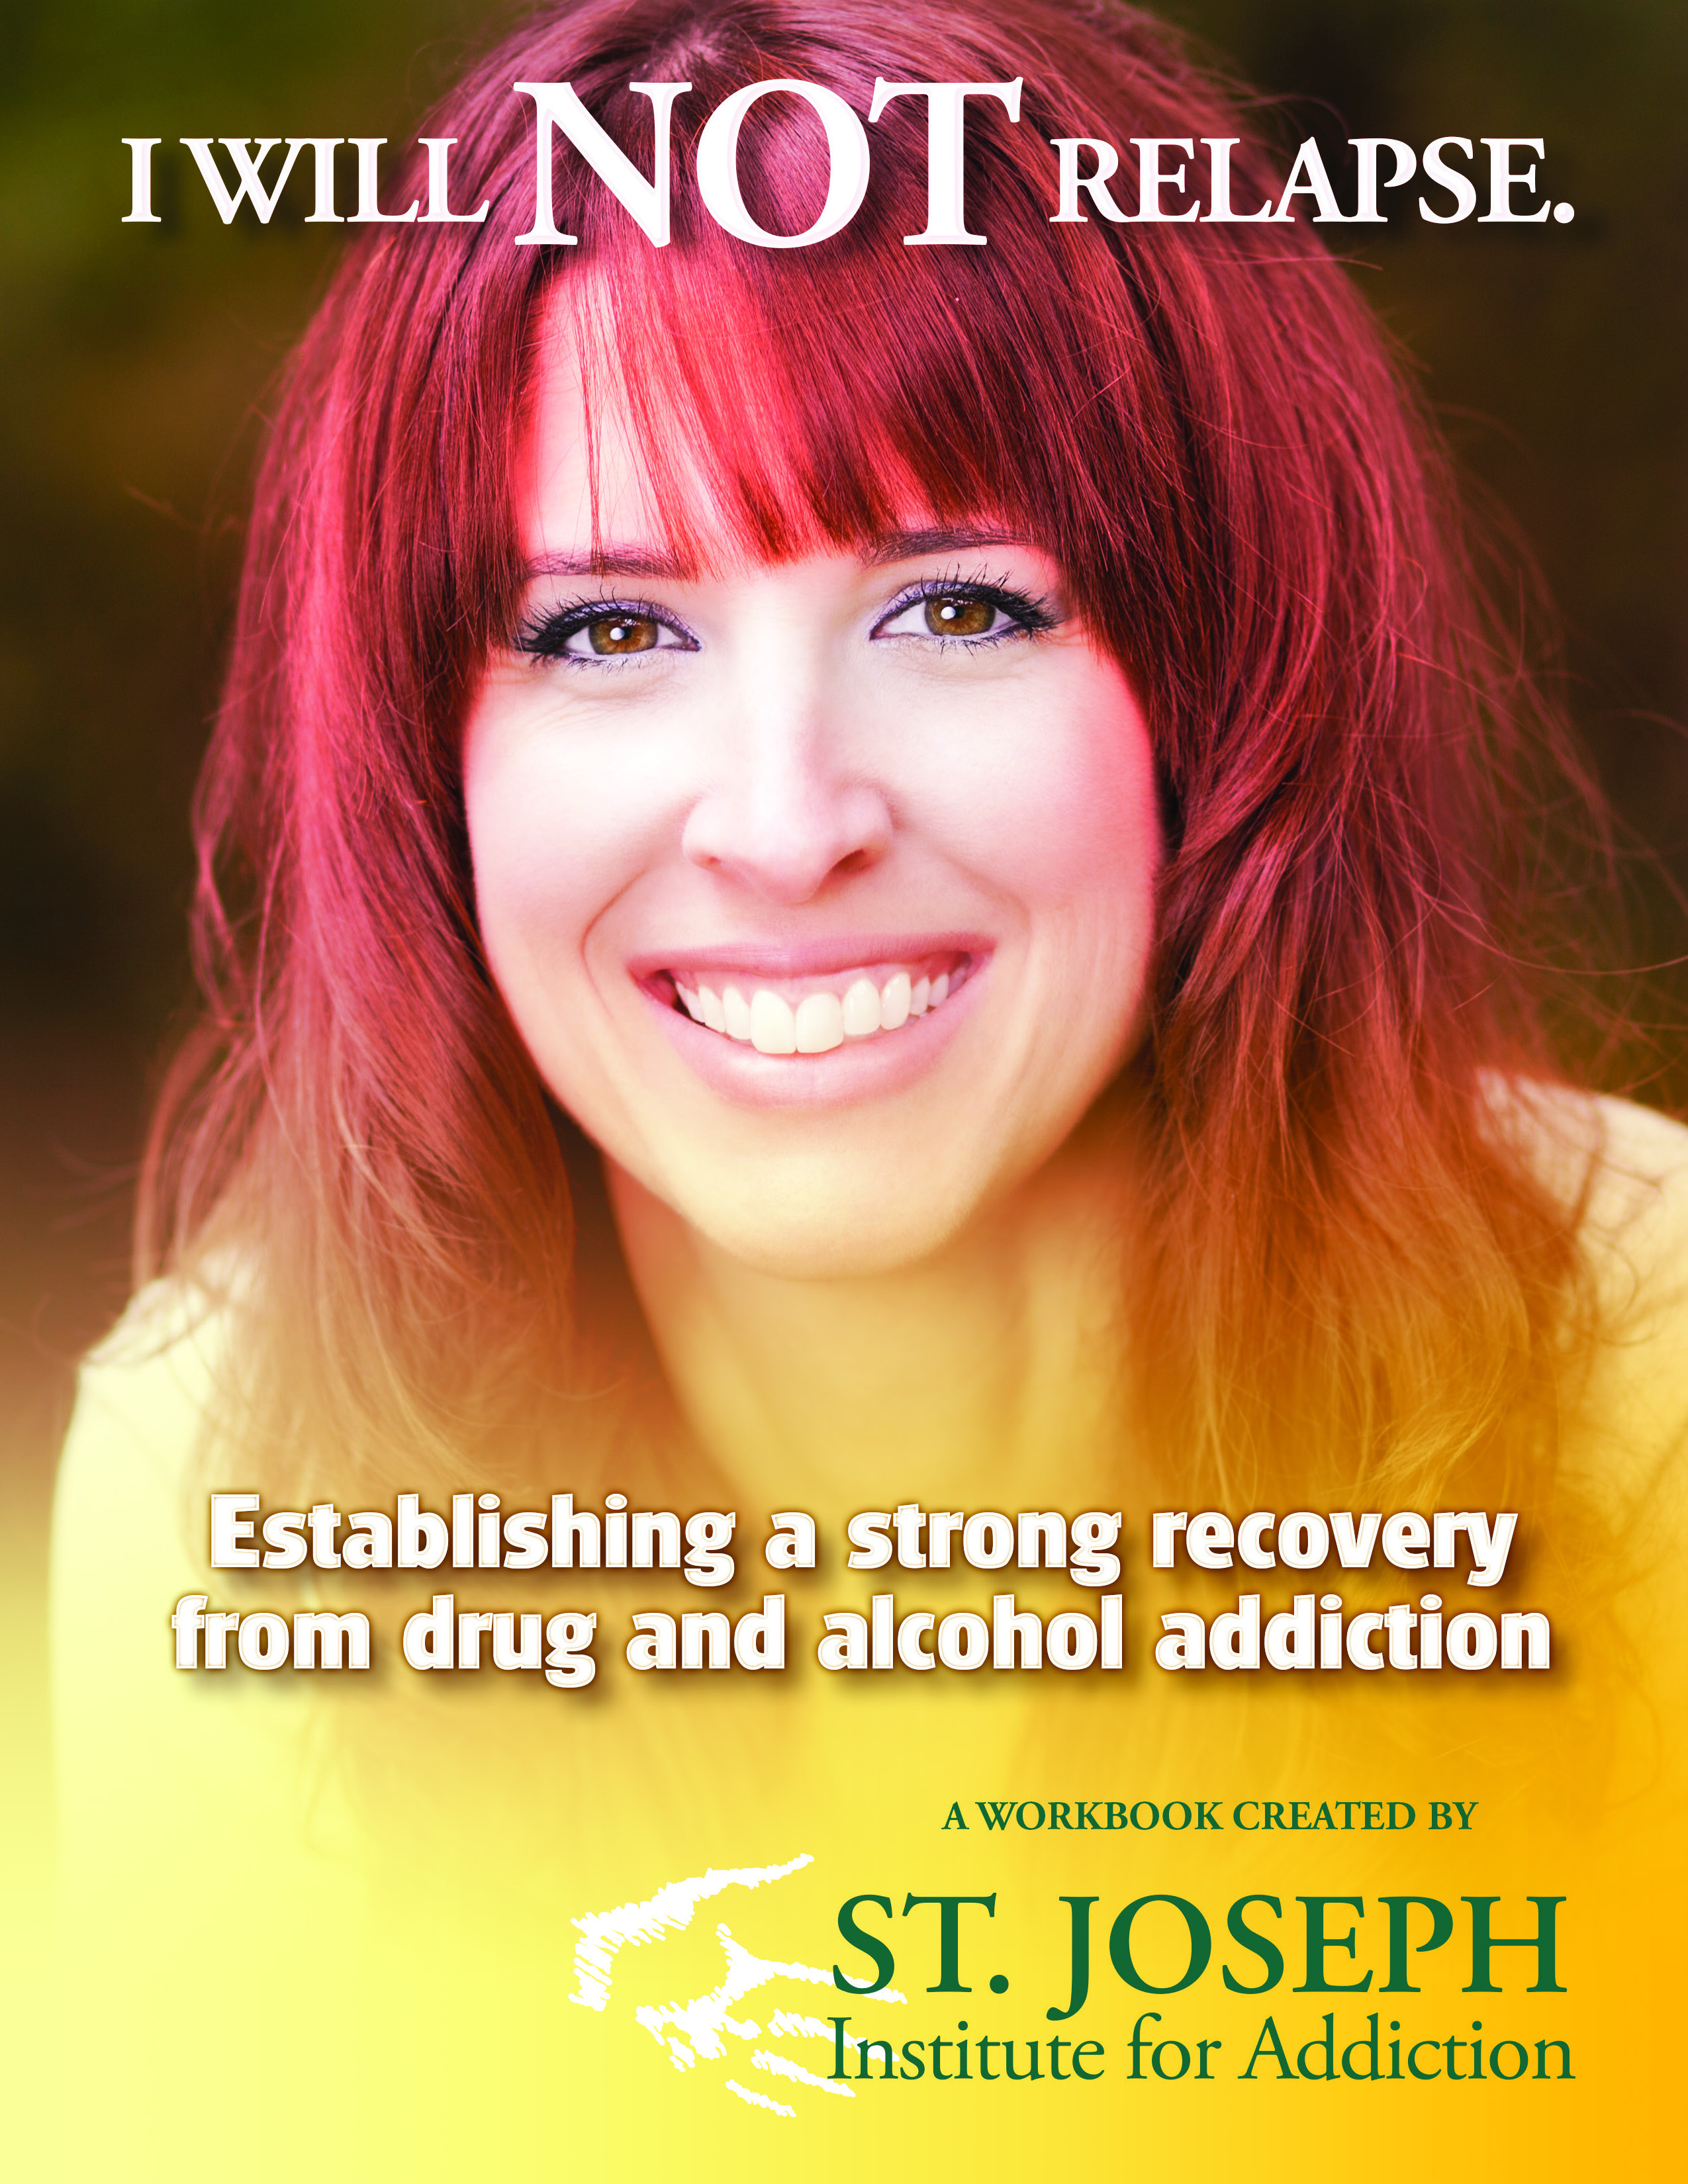 I-Will-NOT-Relapse - workbook cover